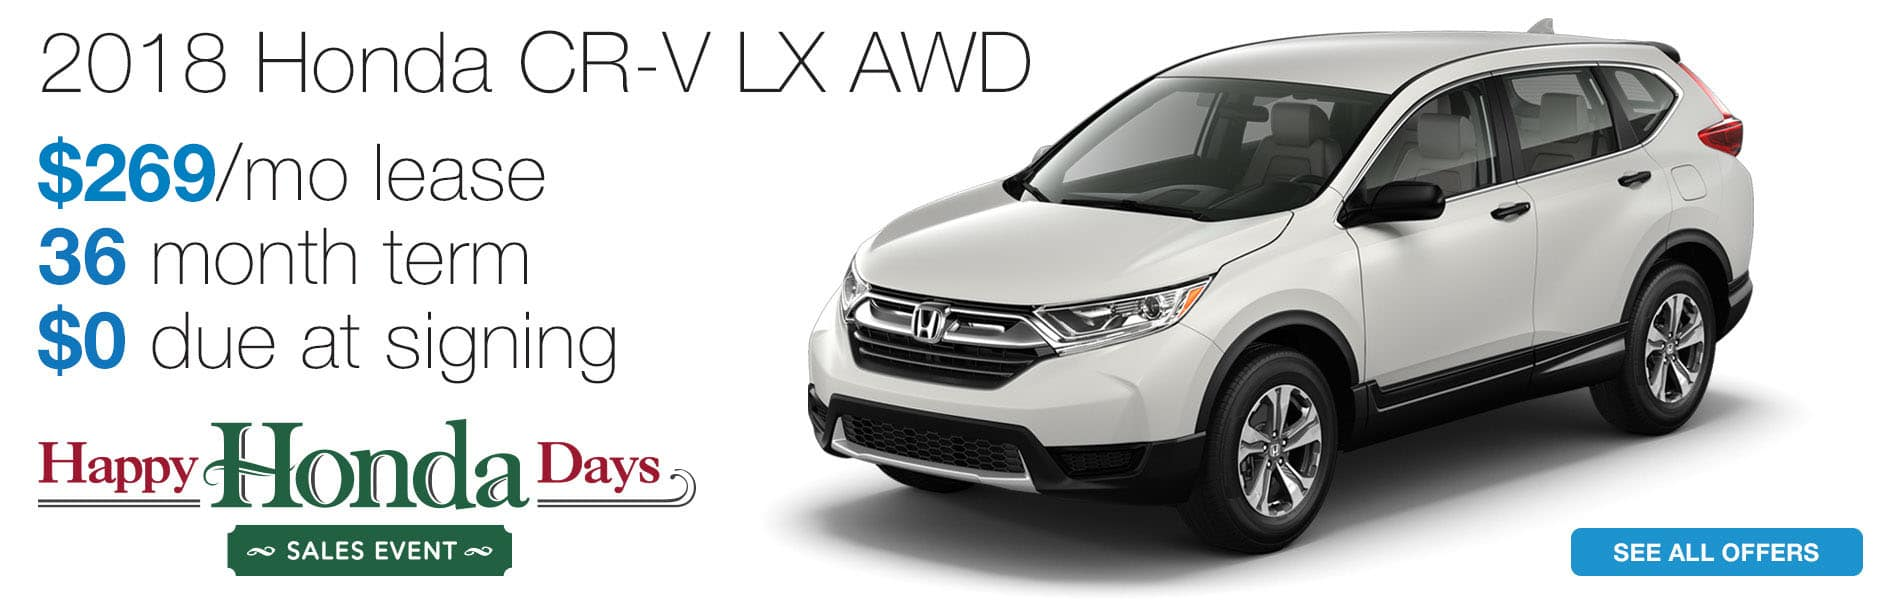 Lease a 2018 Honda CR-V LX AWD for $269 per month lease with $0 due at signing